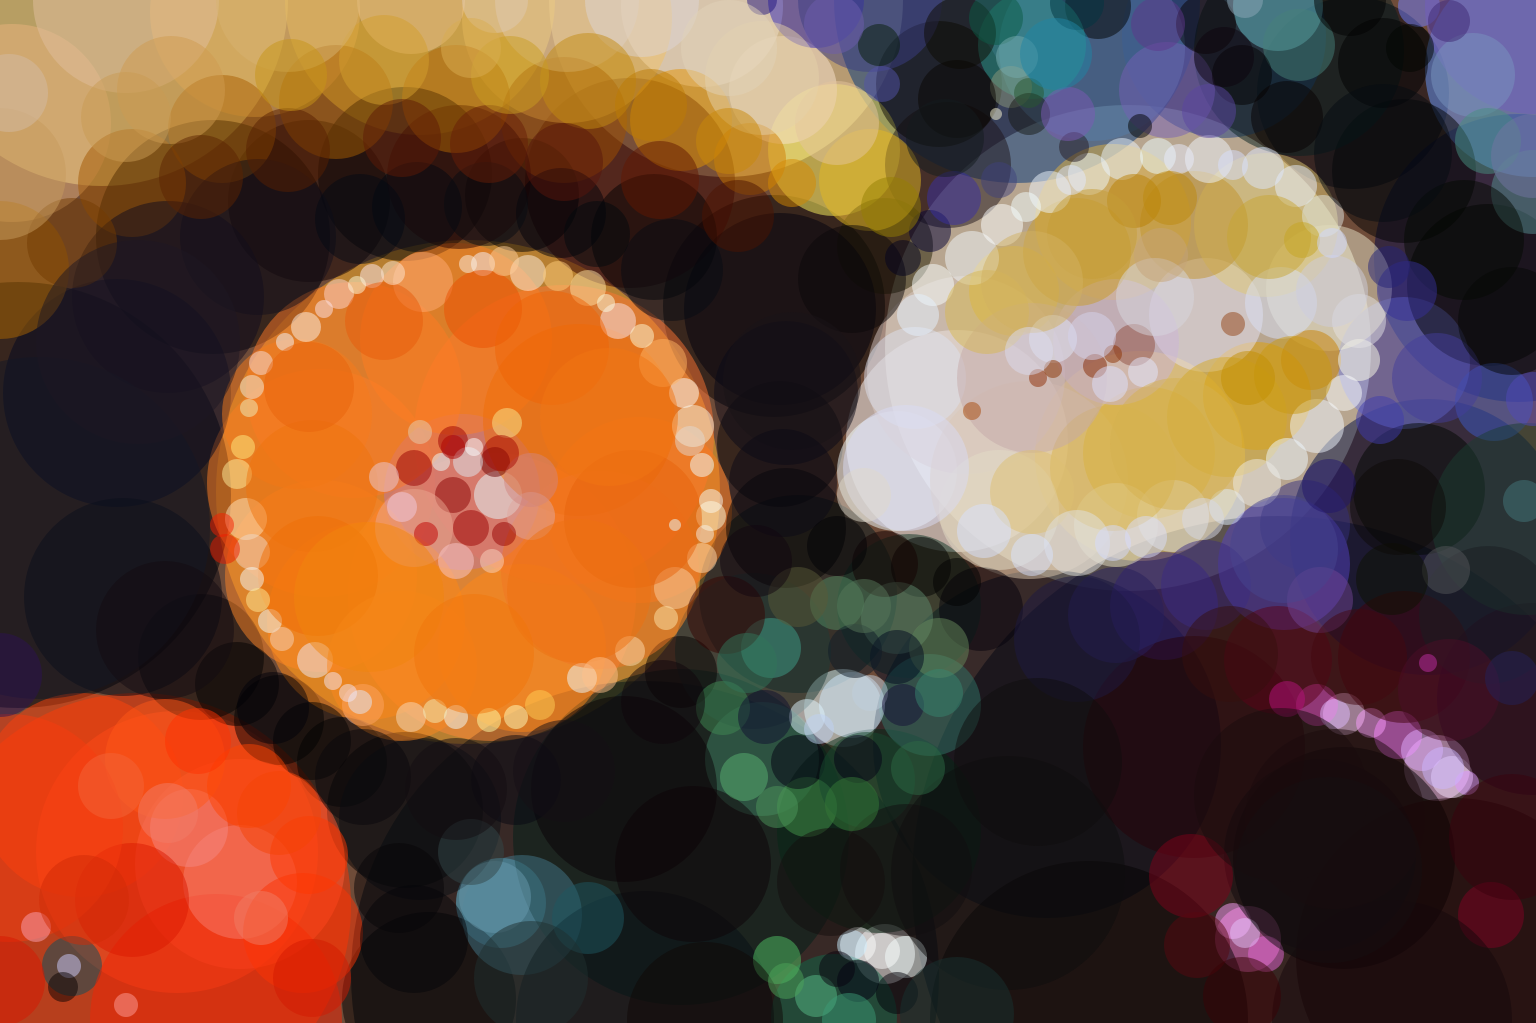 Geometrized Sliced Fruit - 500 circles